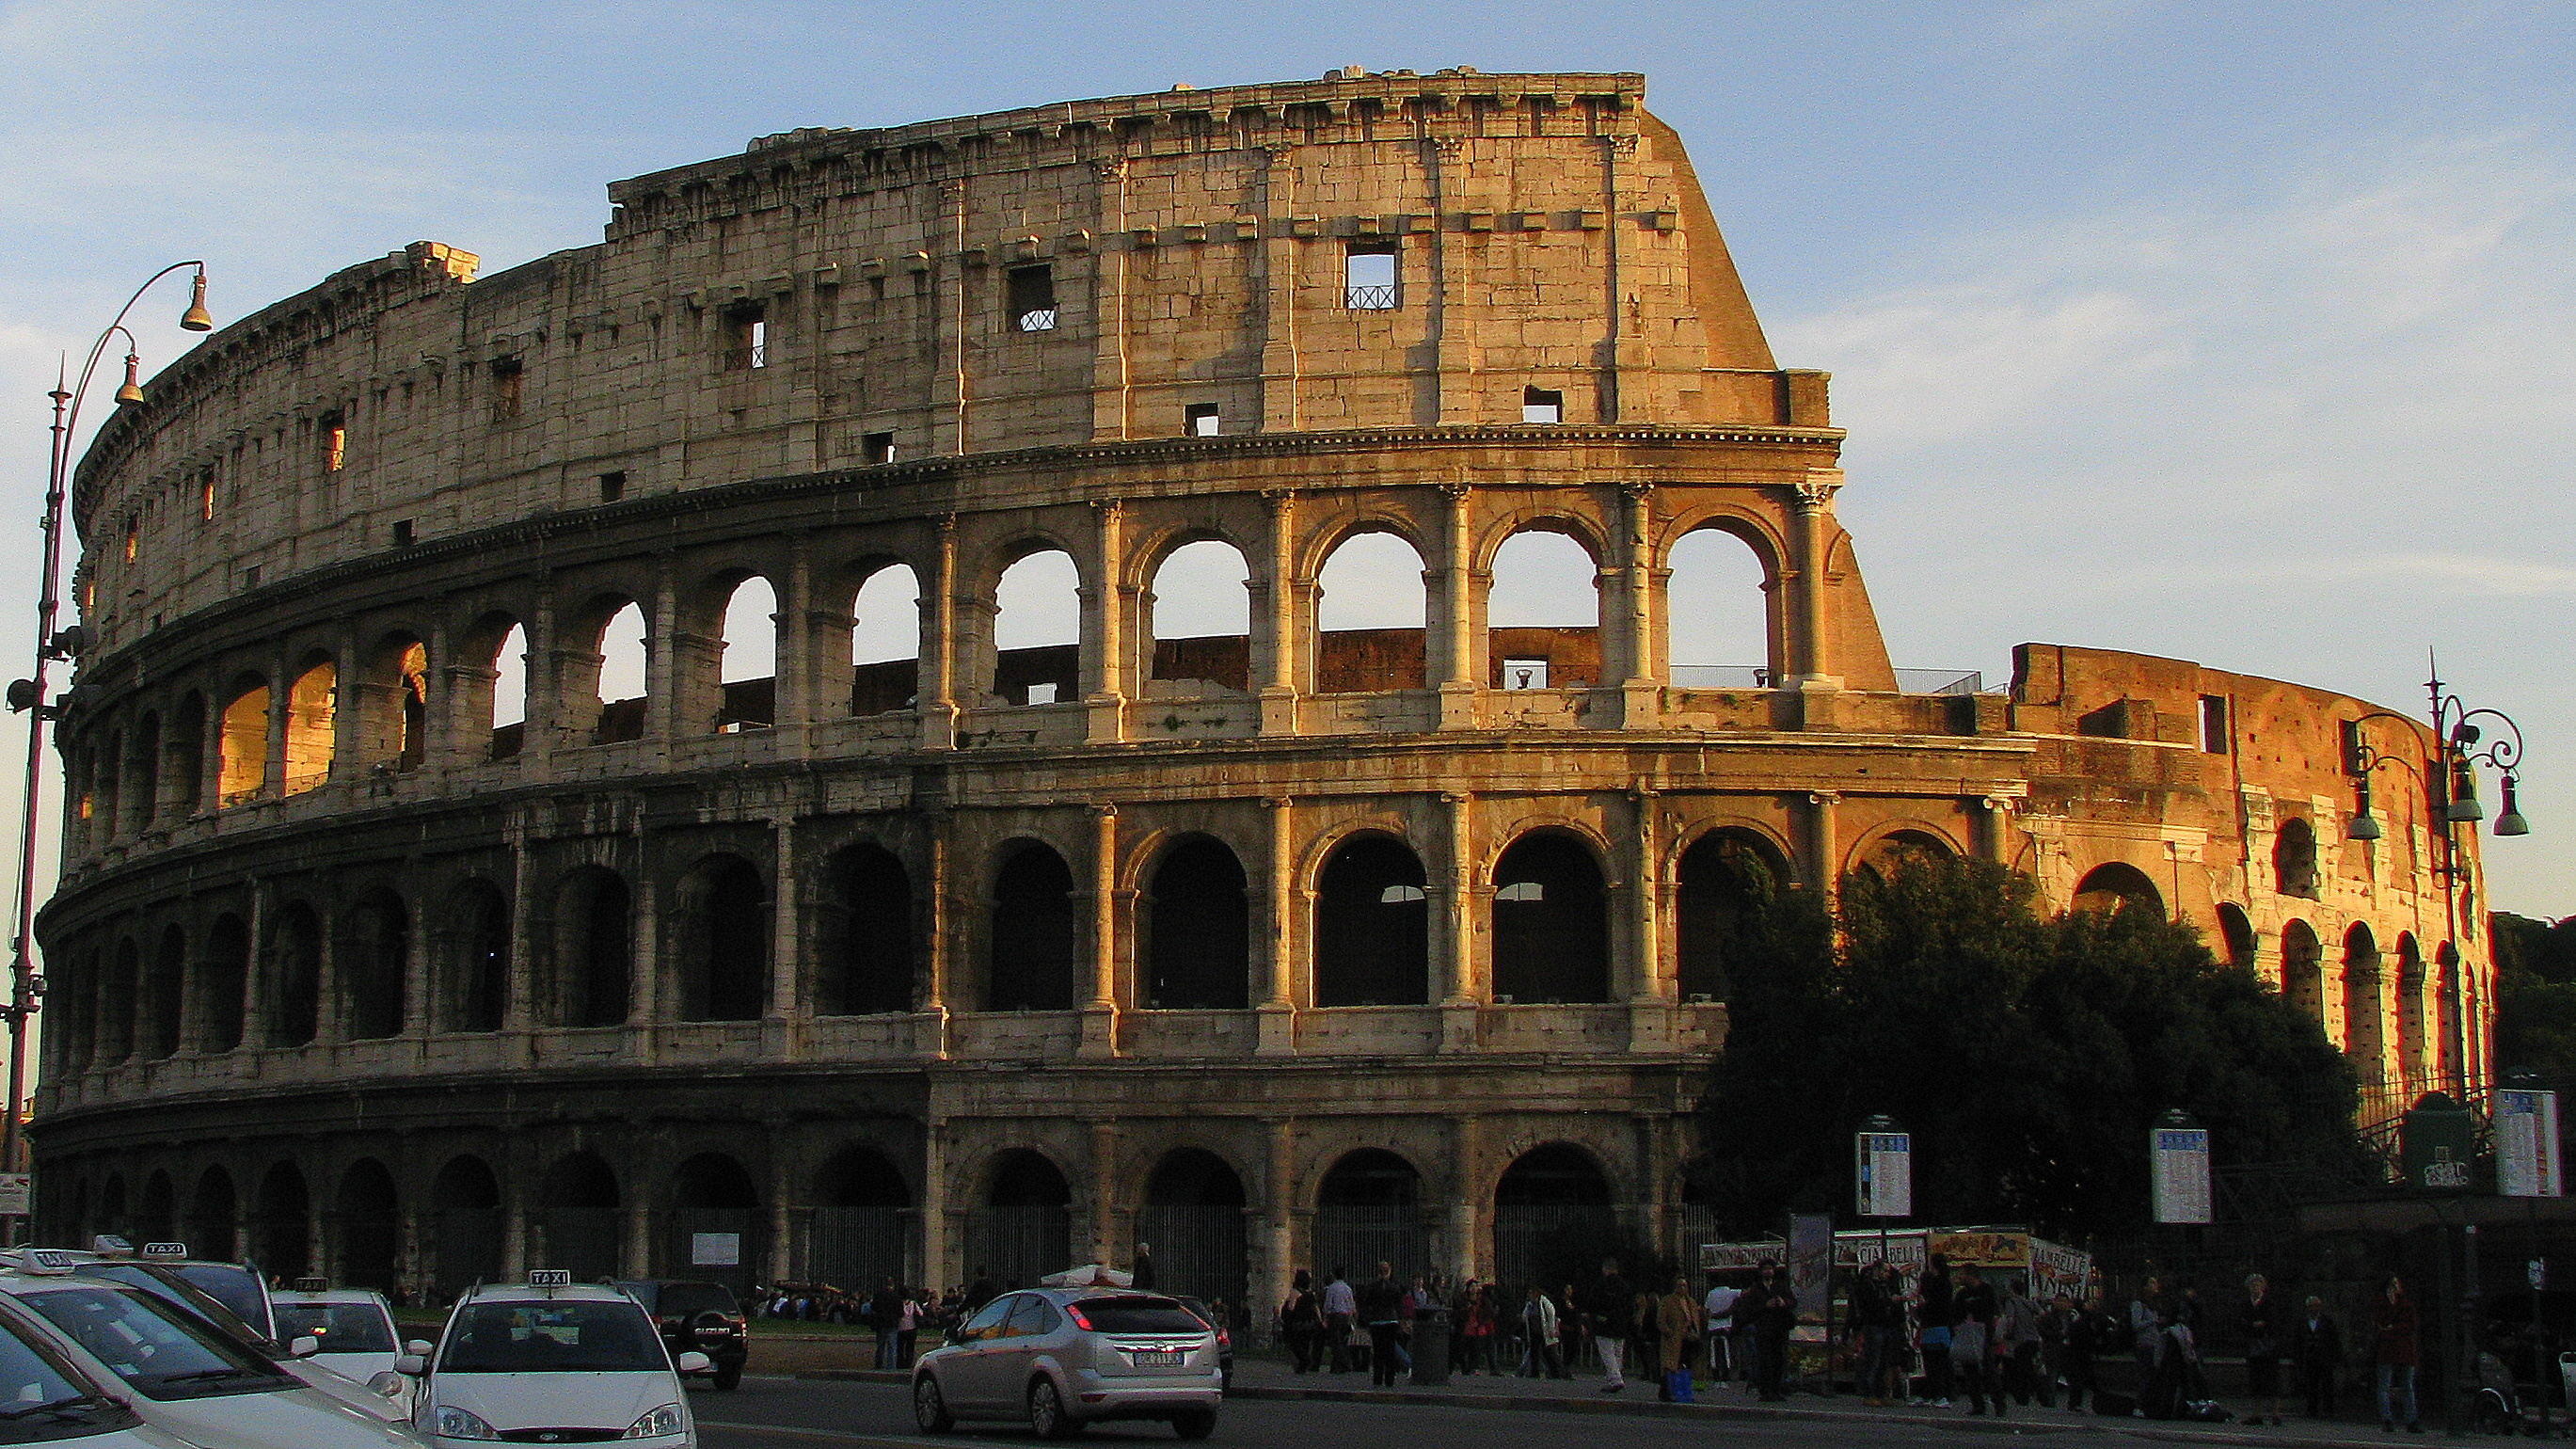 File:The Colosseum.jpg - Wikimedia Commons